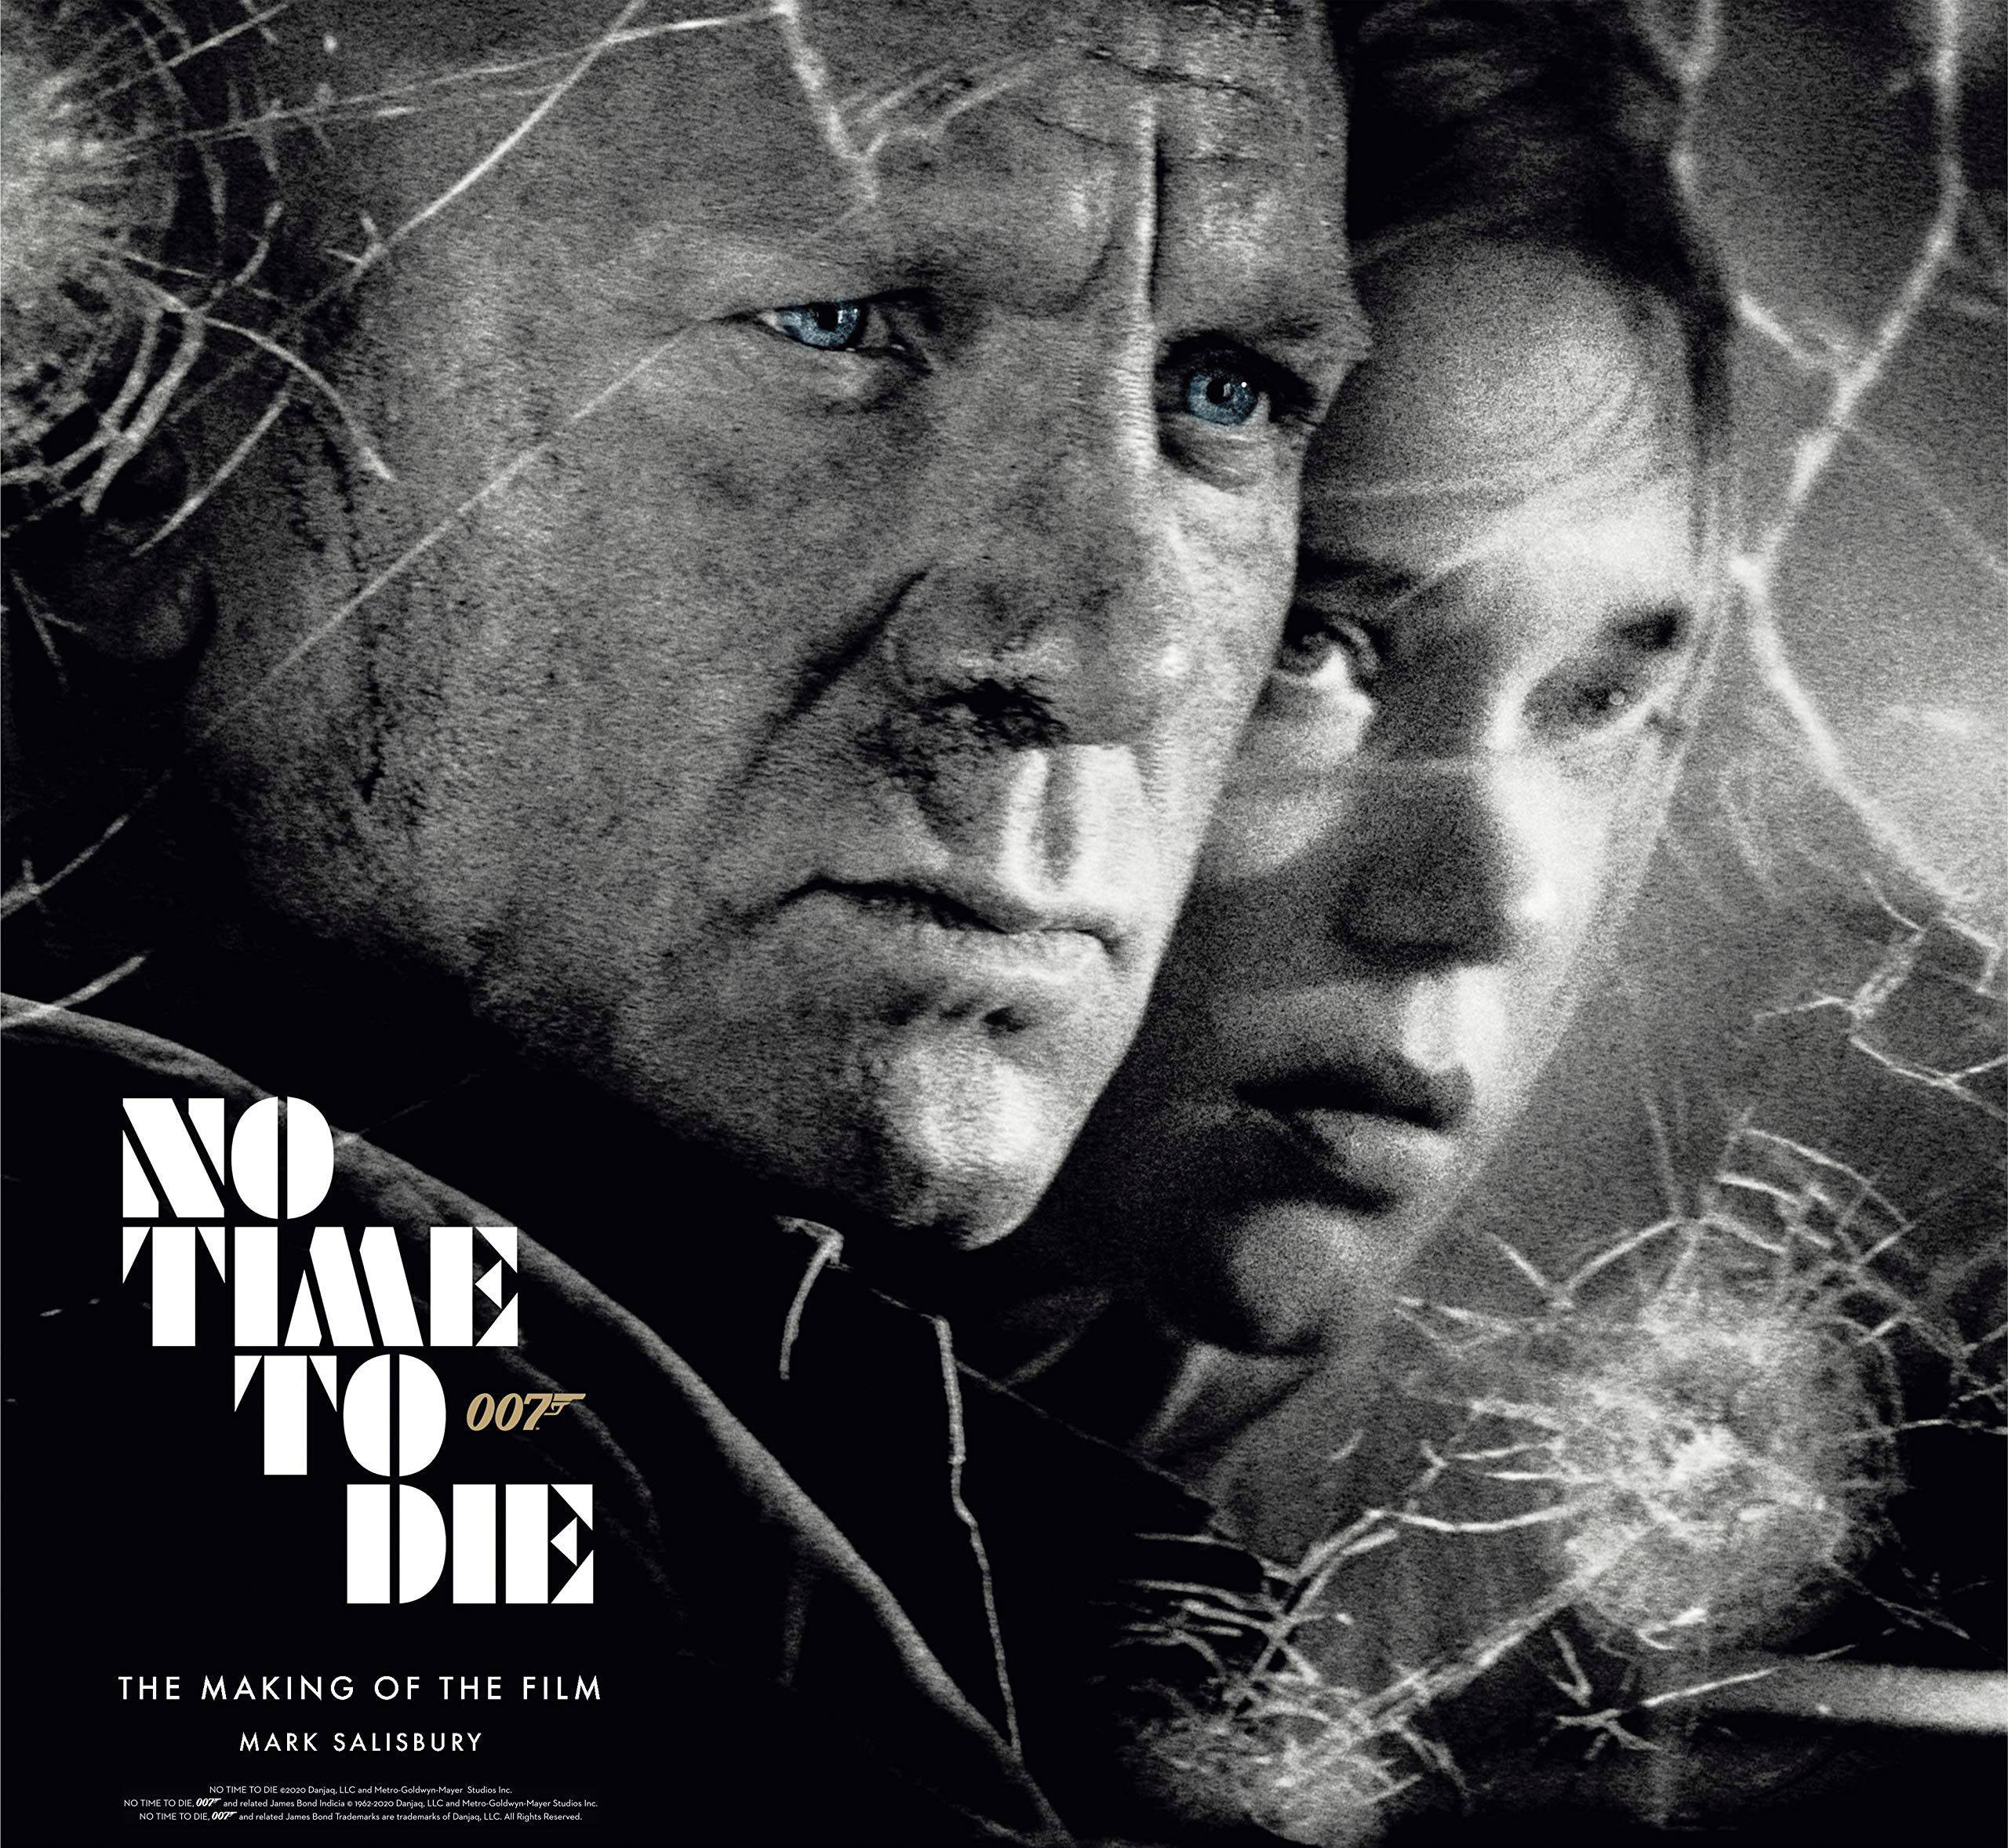 James Bond: No Time To Die: The Making of the Film